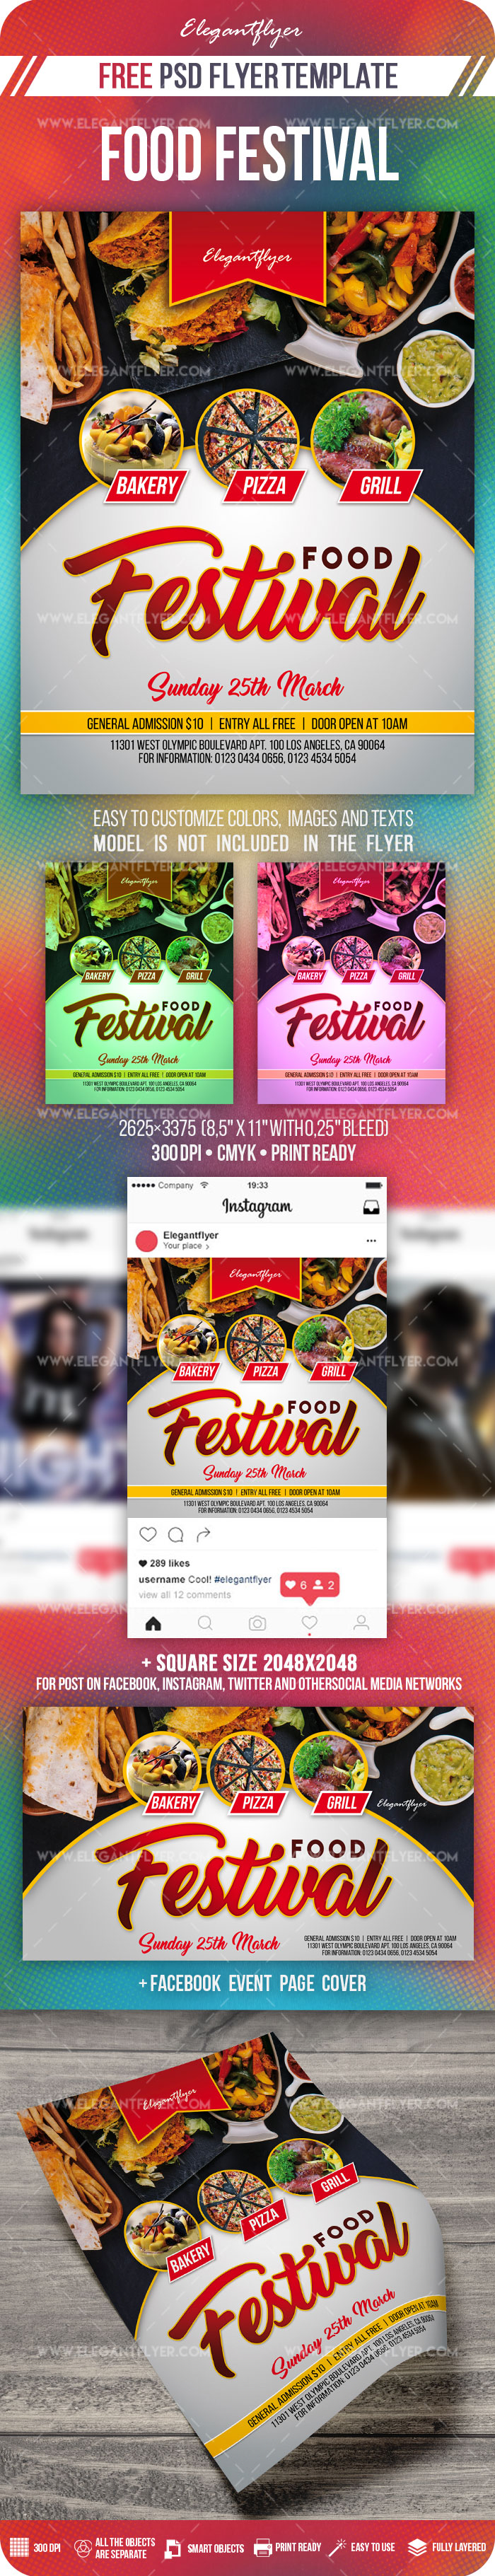 Food Festival – Free PSD Flyer Template + Facebook Cover + Instagram Post